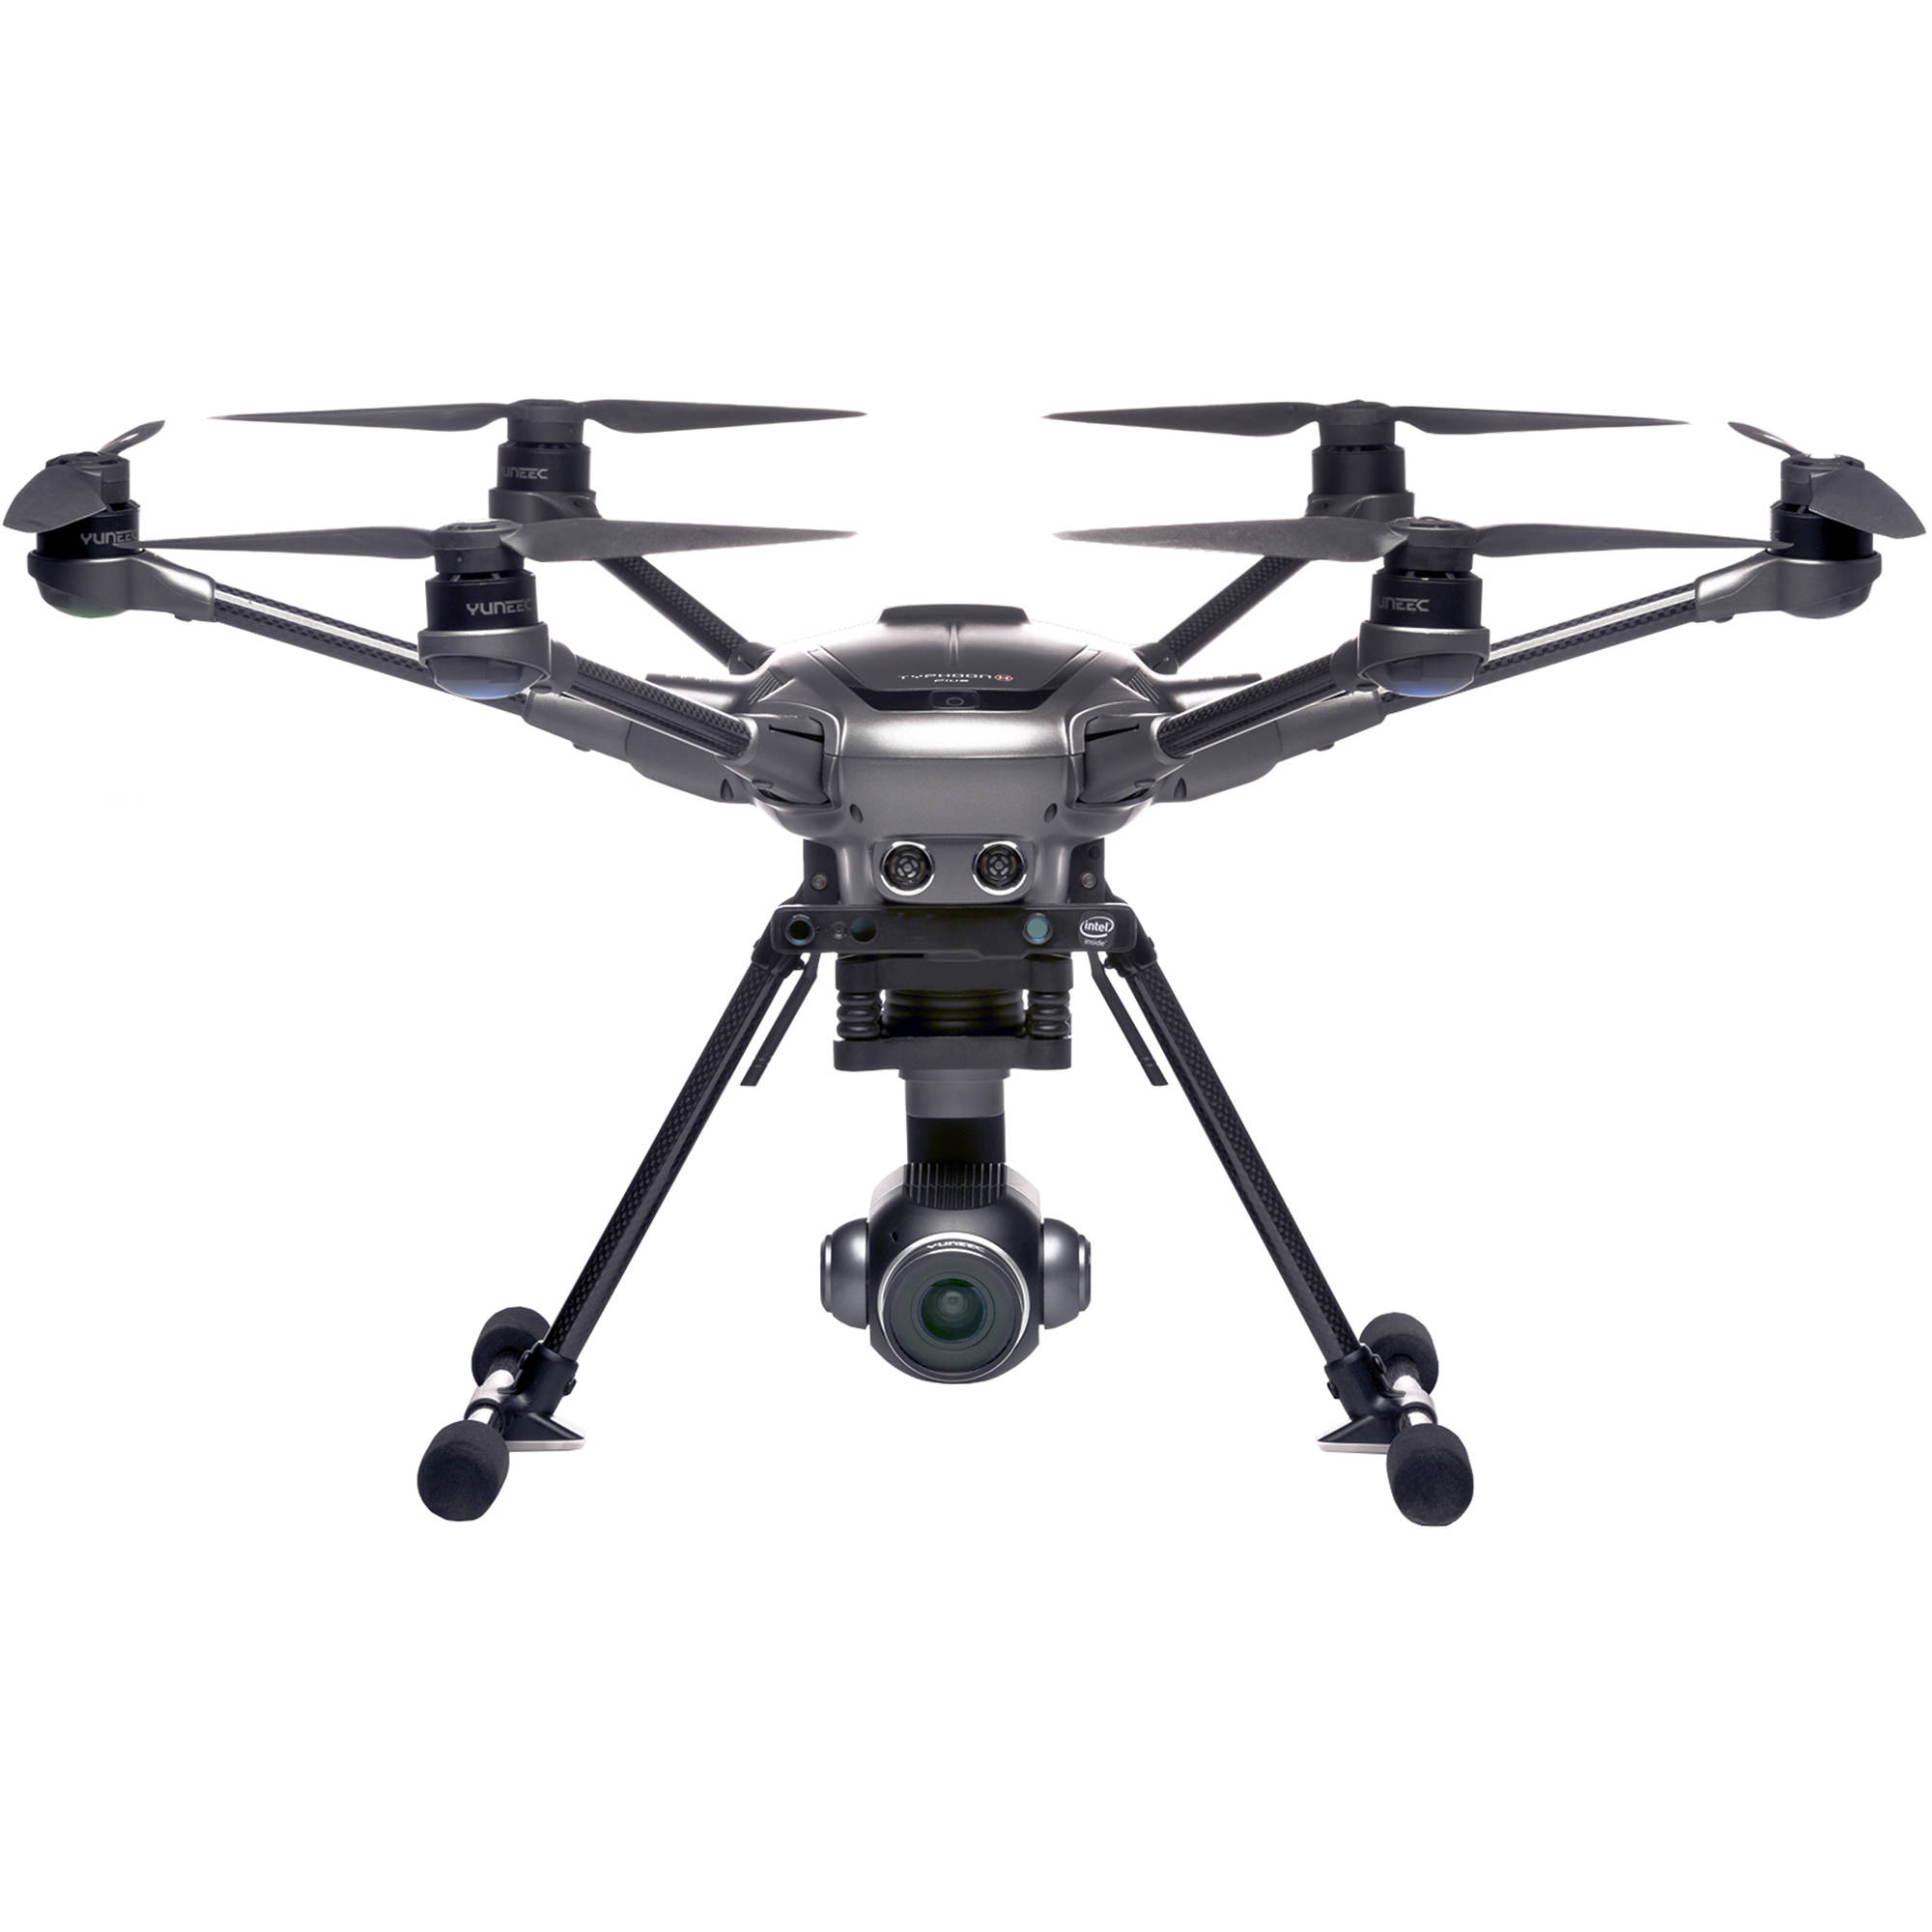 Typhoon H Pro >> Yuneec Typhoon H Plus Pro Hexacopter Yuntyhprbpus B H Photo